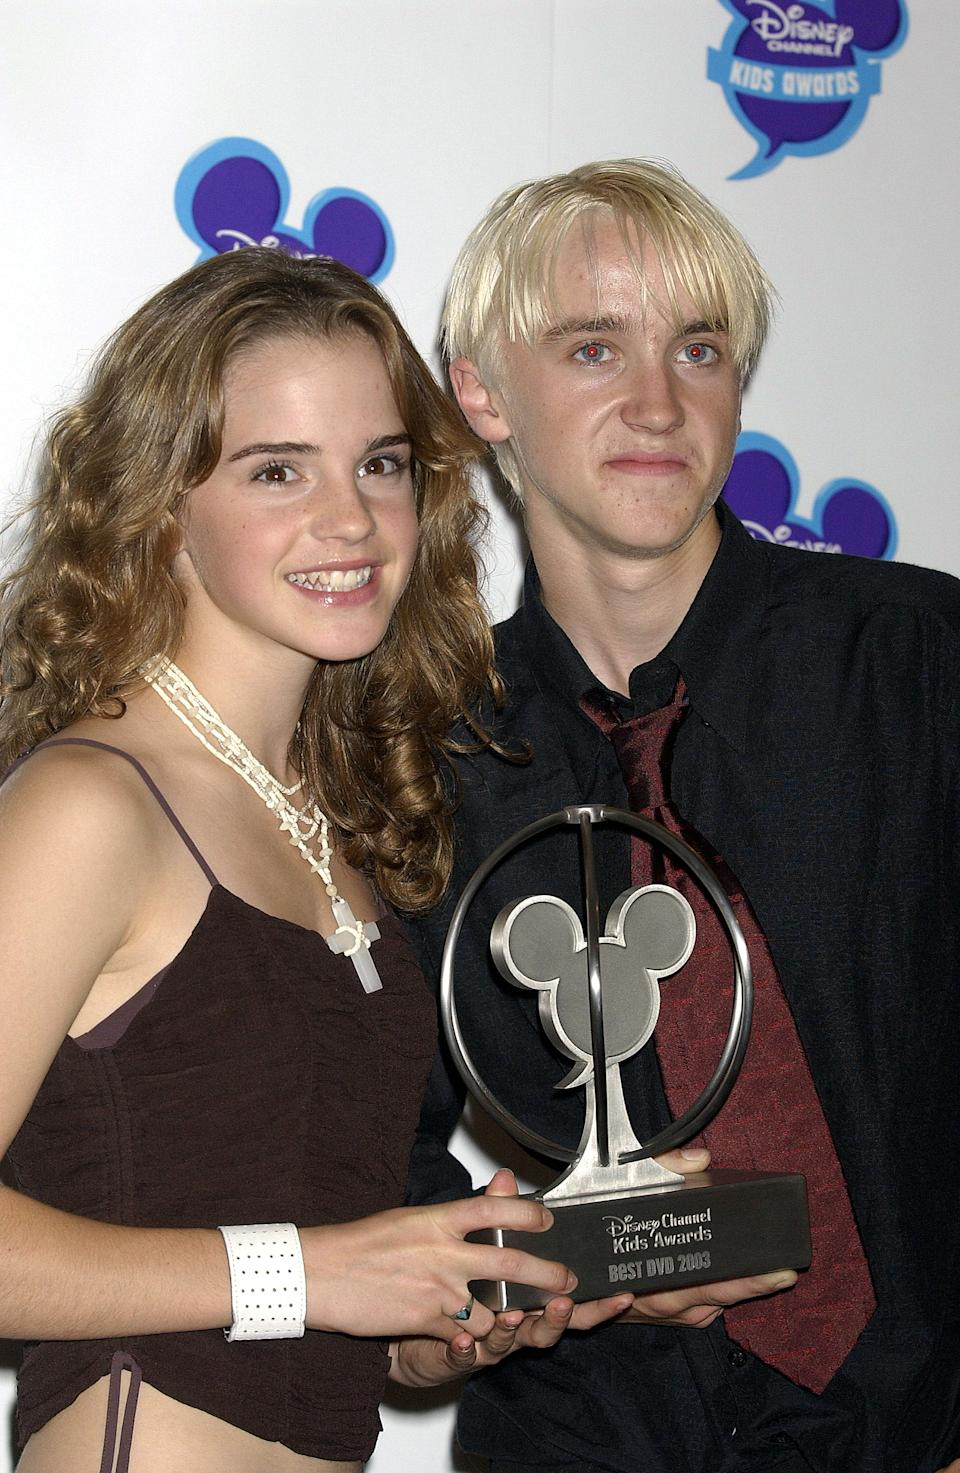 Disney Channel Kids Awards 2003 At The Royal Albert Hall, London, Britain - 20 Sep 2003, Emma Watson And Tom Felton (Photo by Brian Rasic/Getty Images)